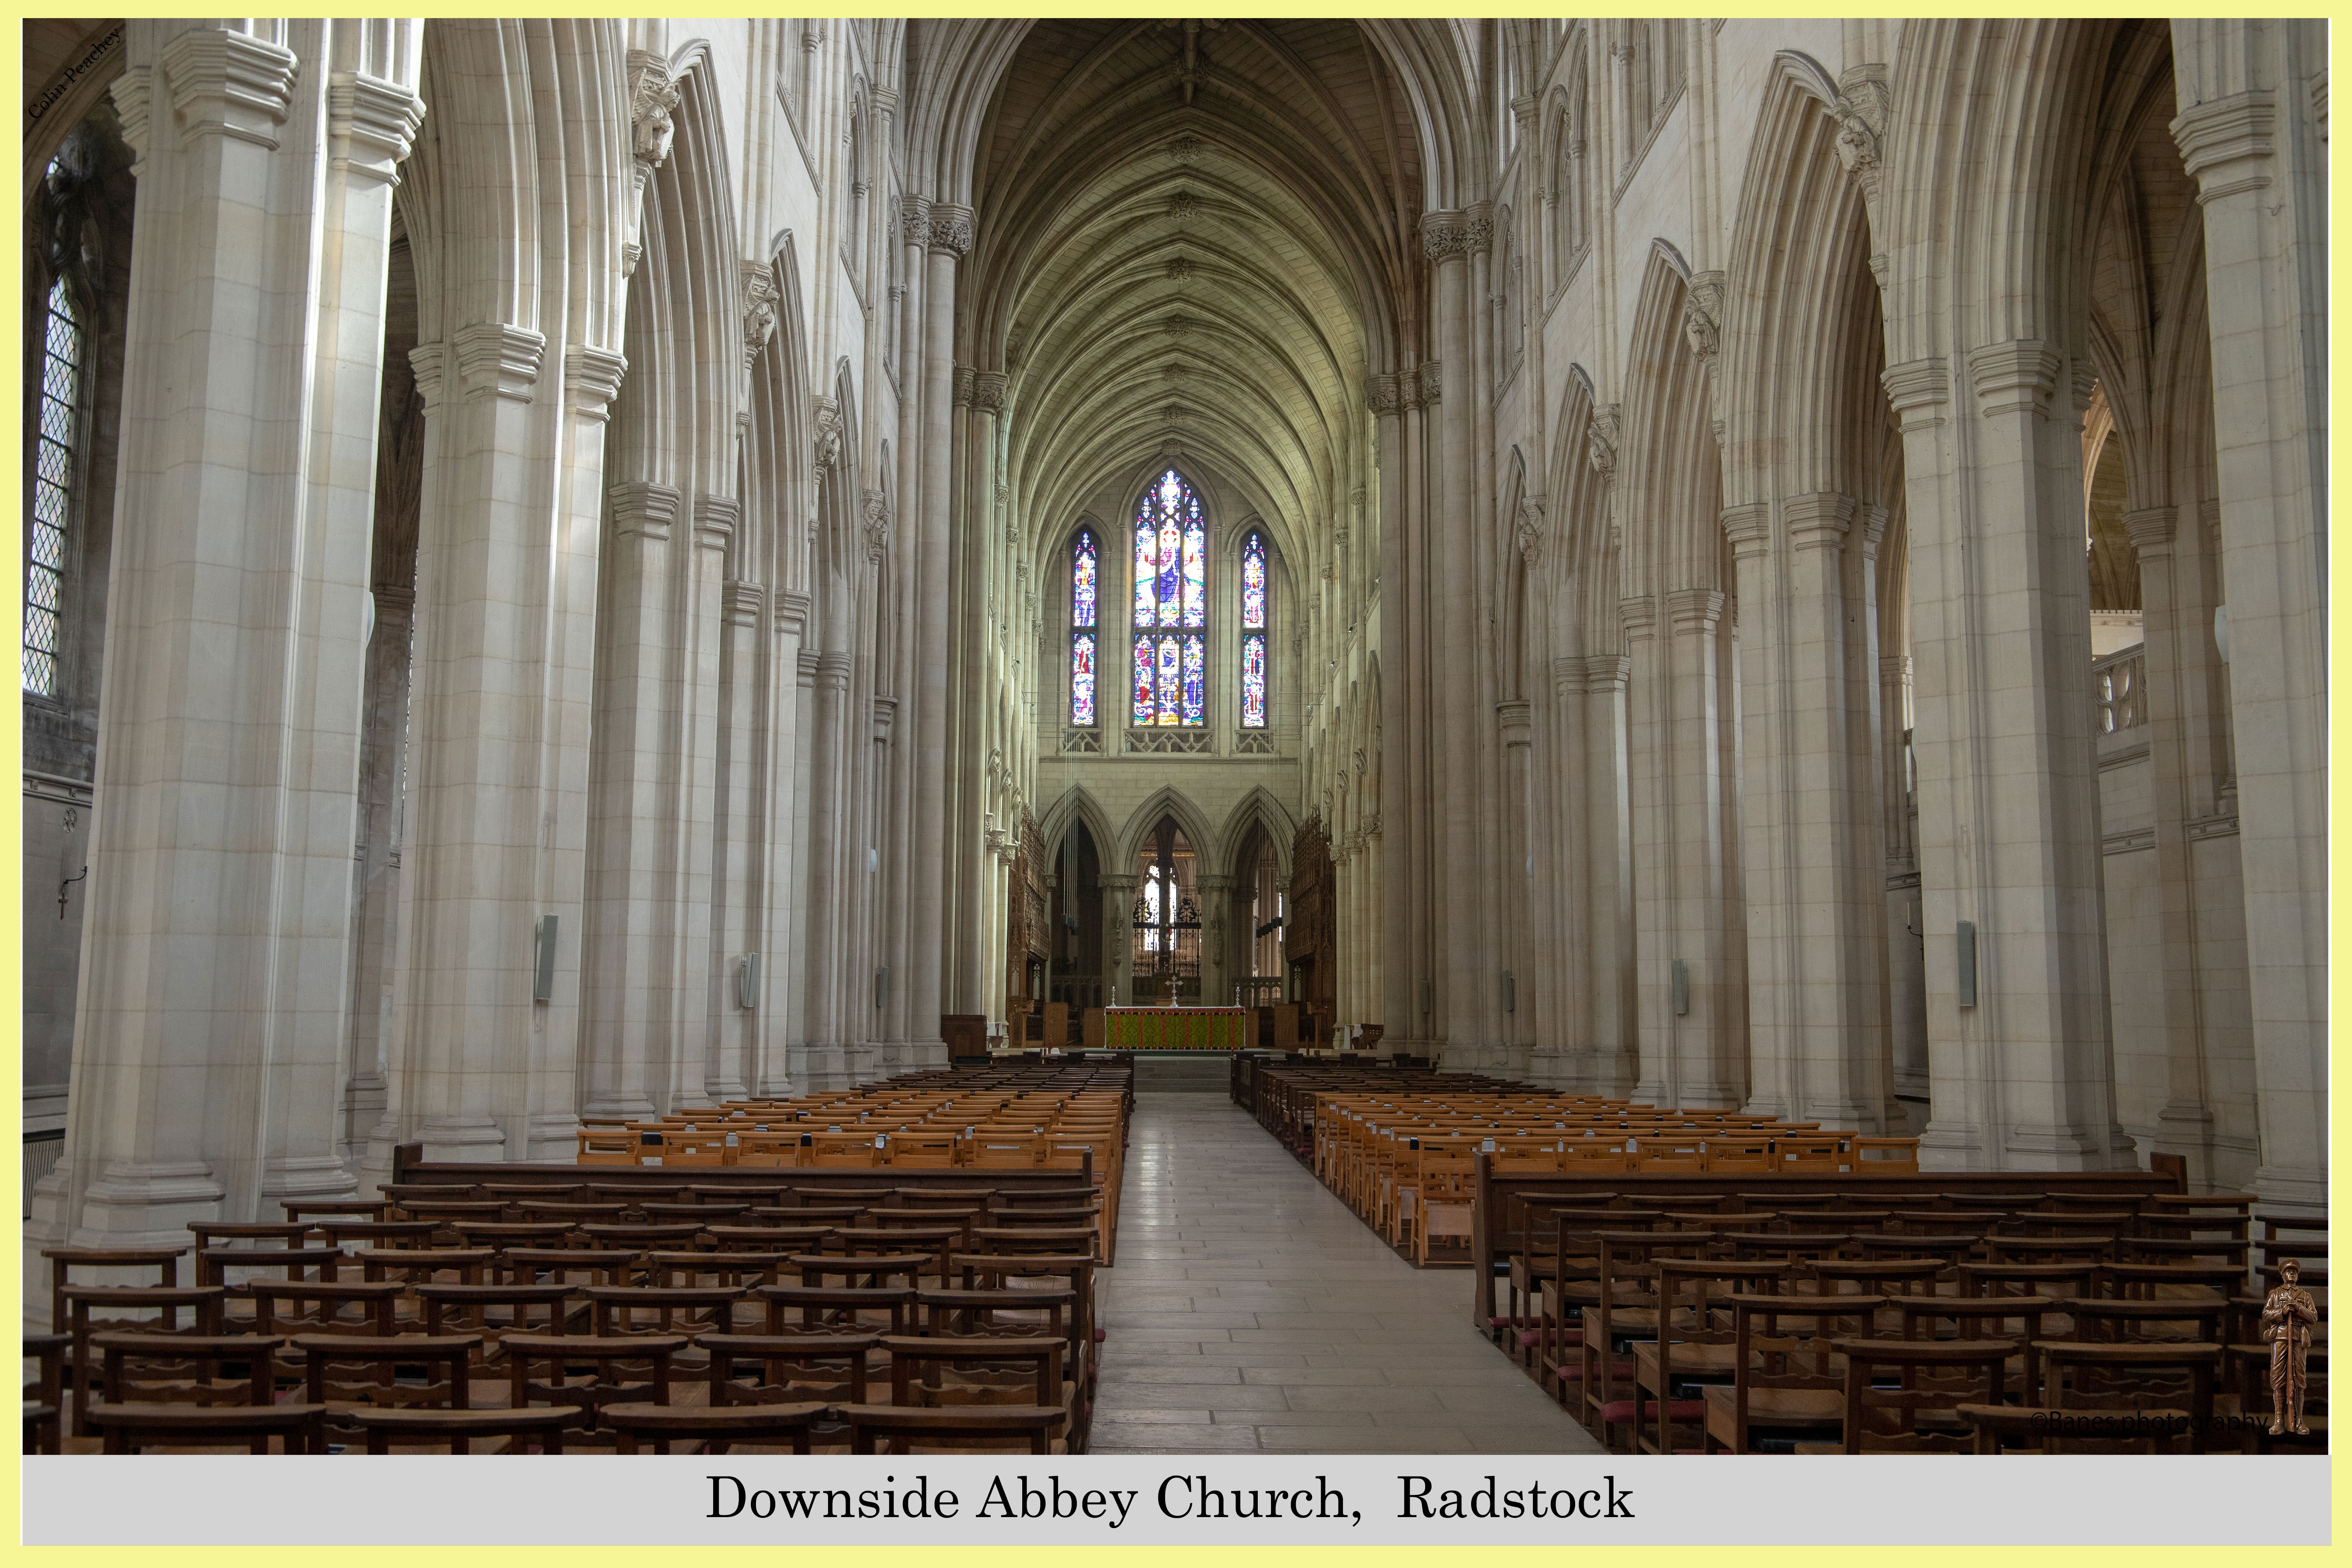 The interior of Downside Abbey Church,  Radstock, UK